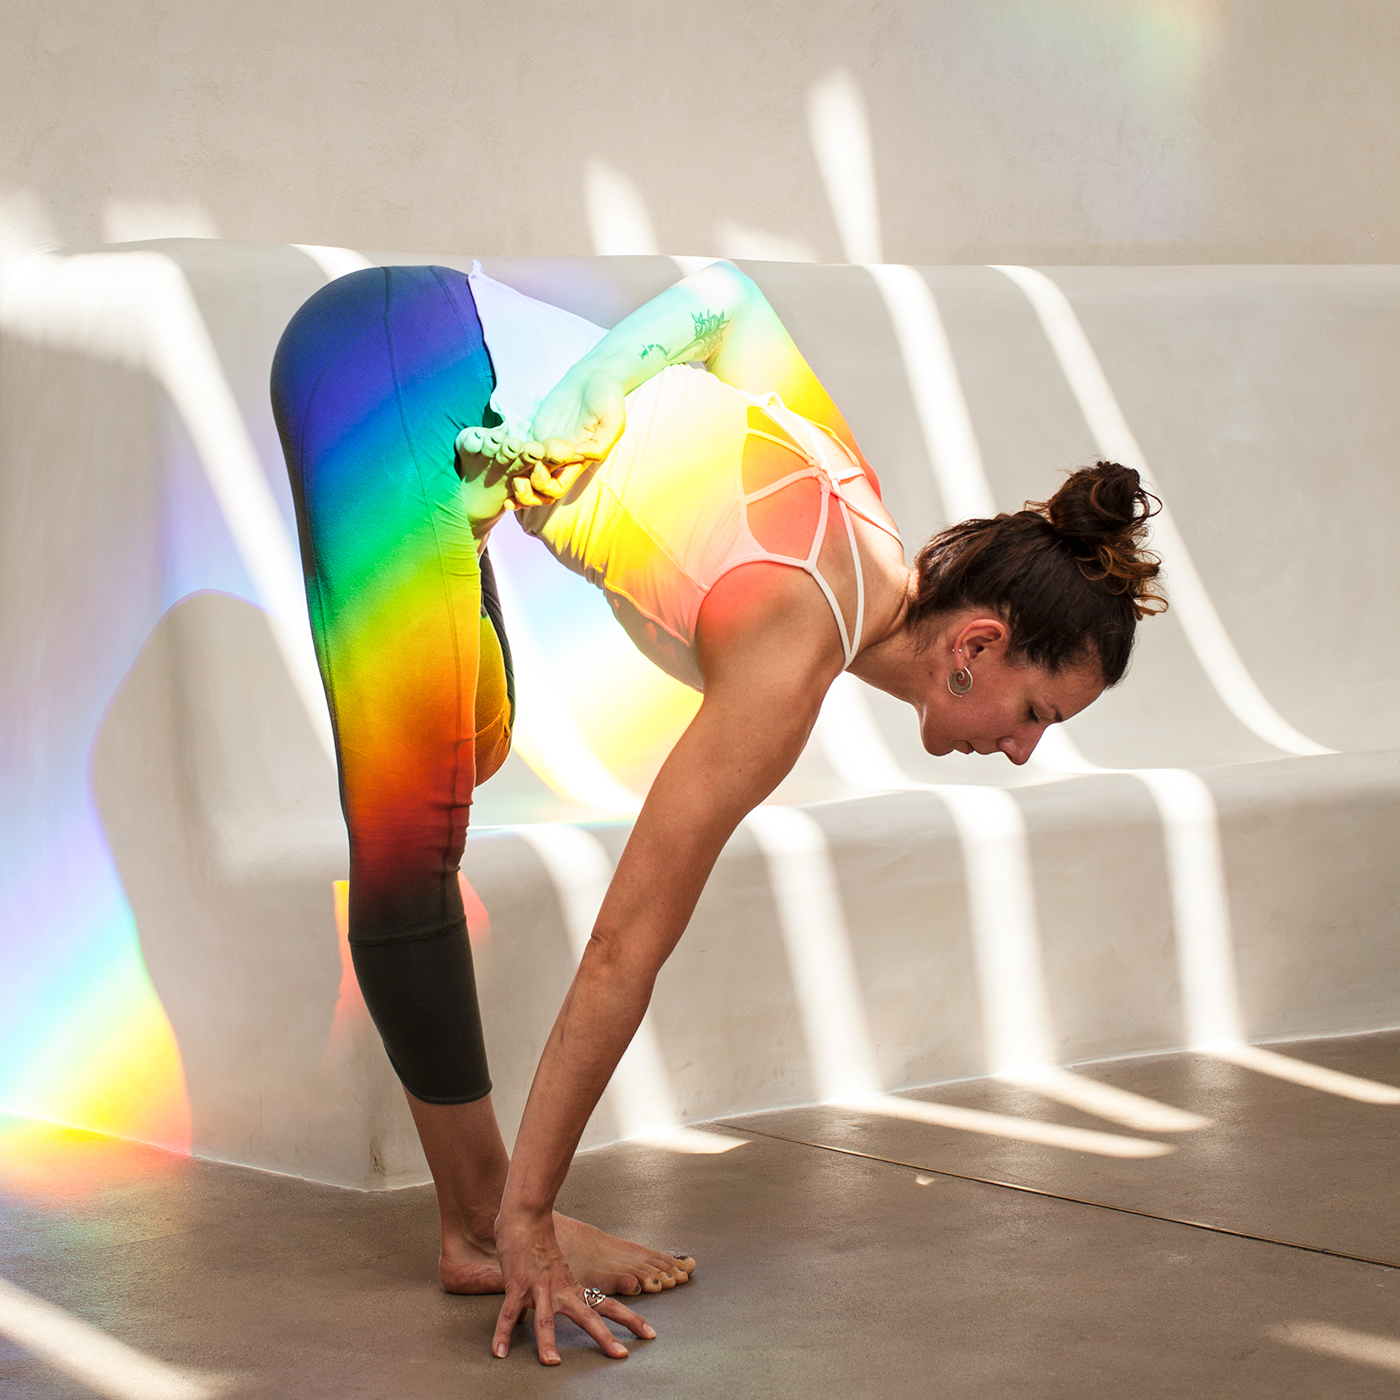 KK_Yoga_lightsanctuary_2440.jpg